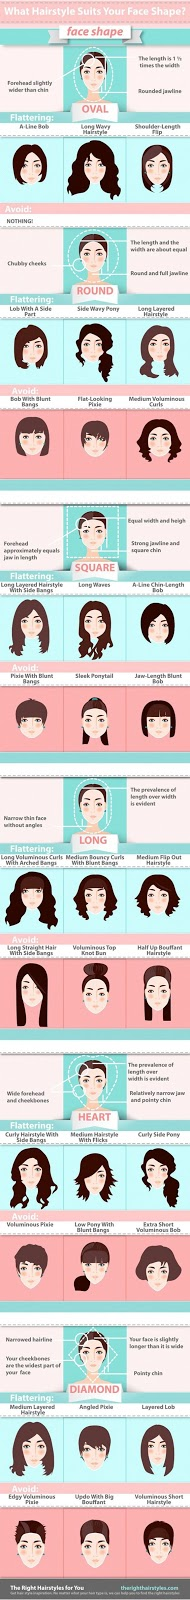 Beauty Basics: Best Hairstyles For Your Face Shape